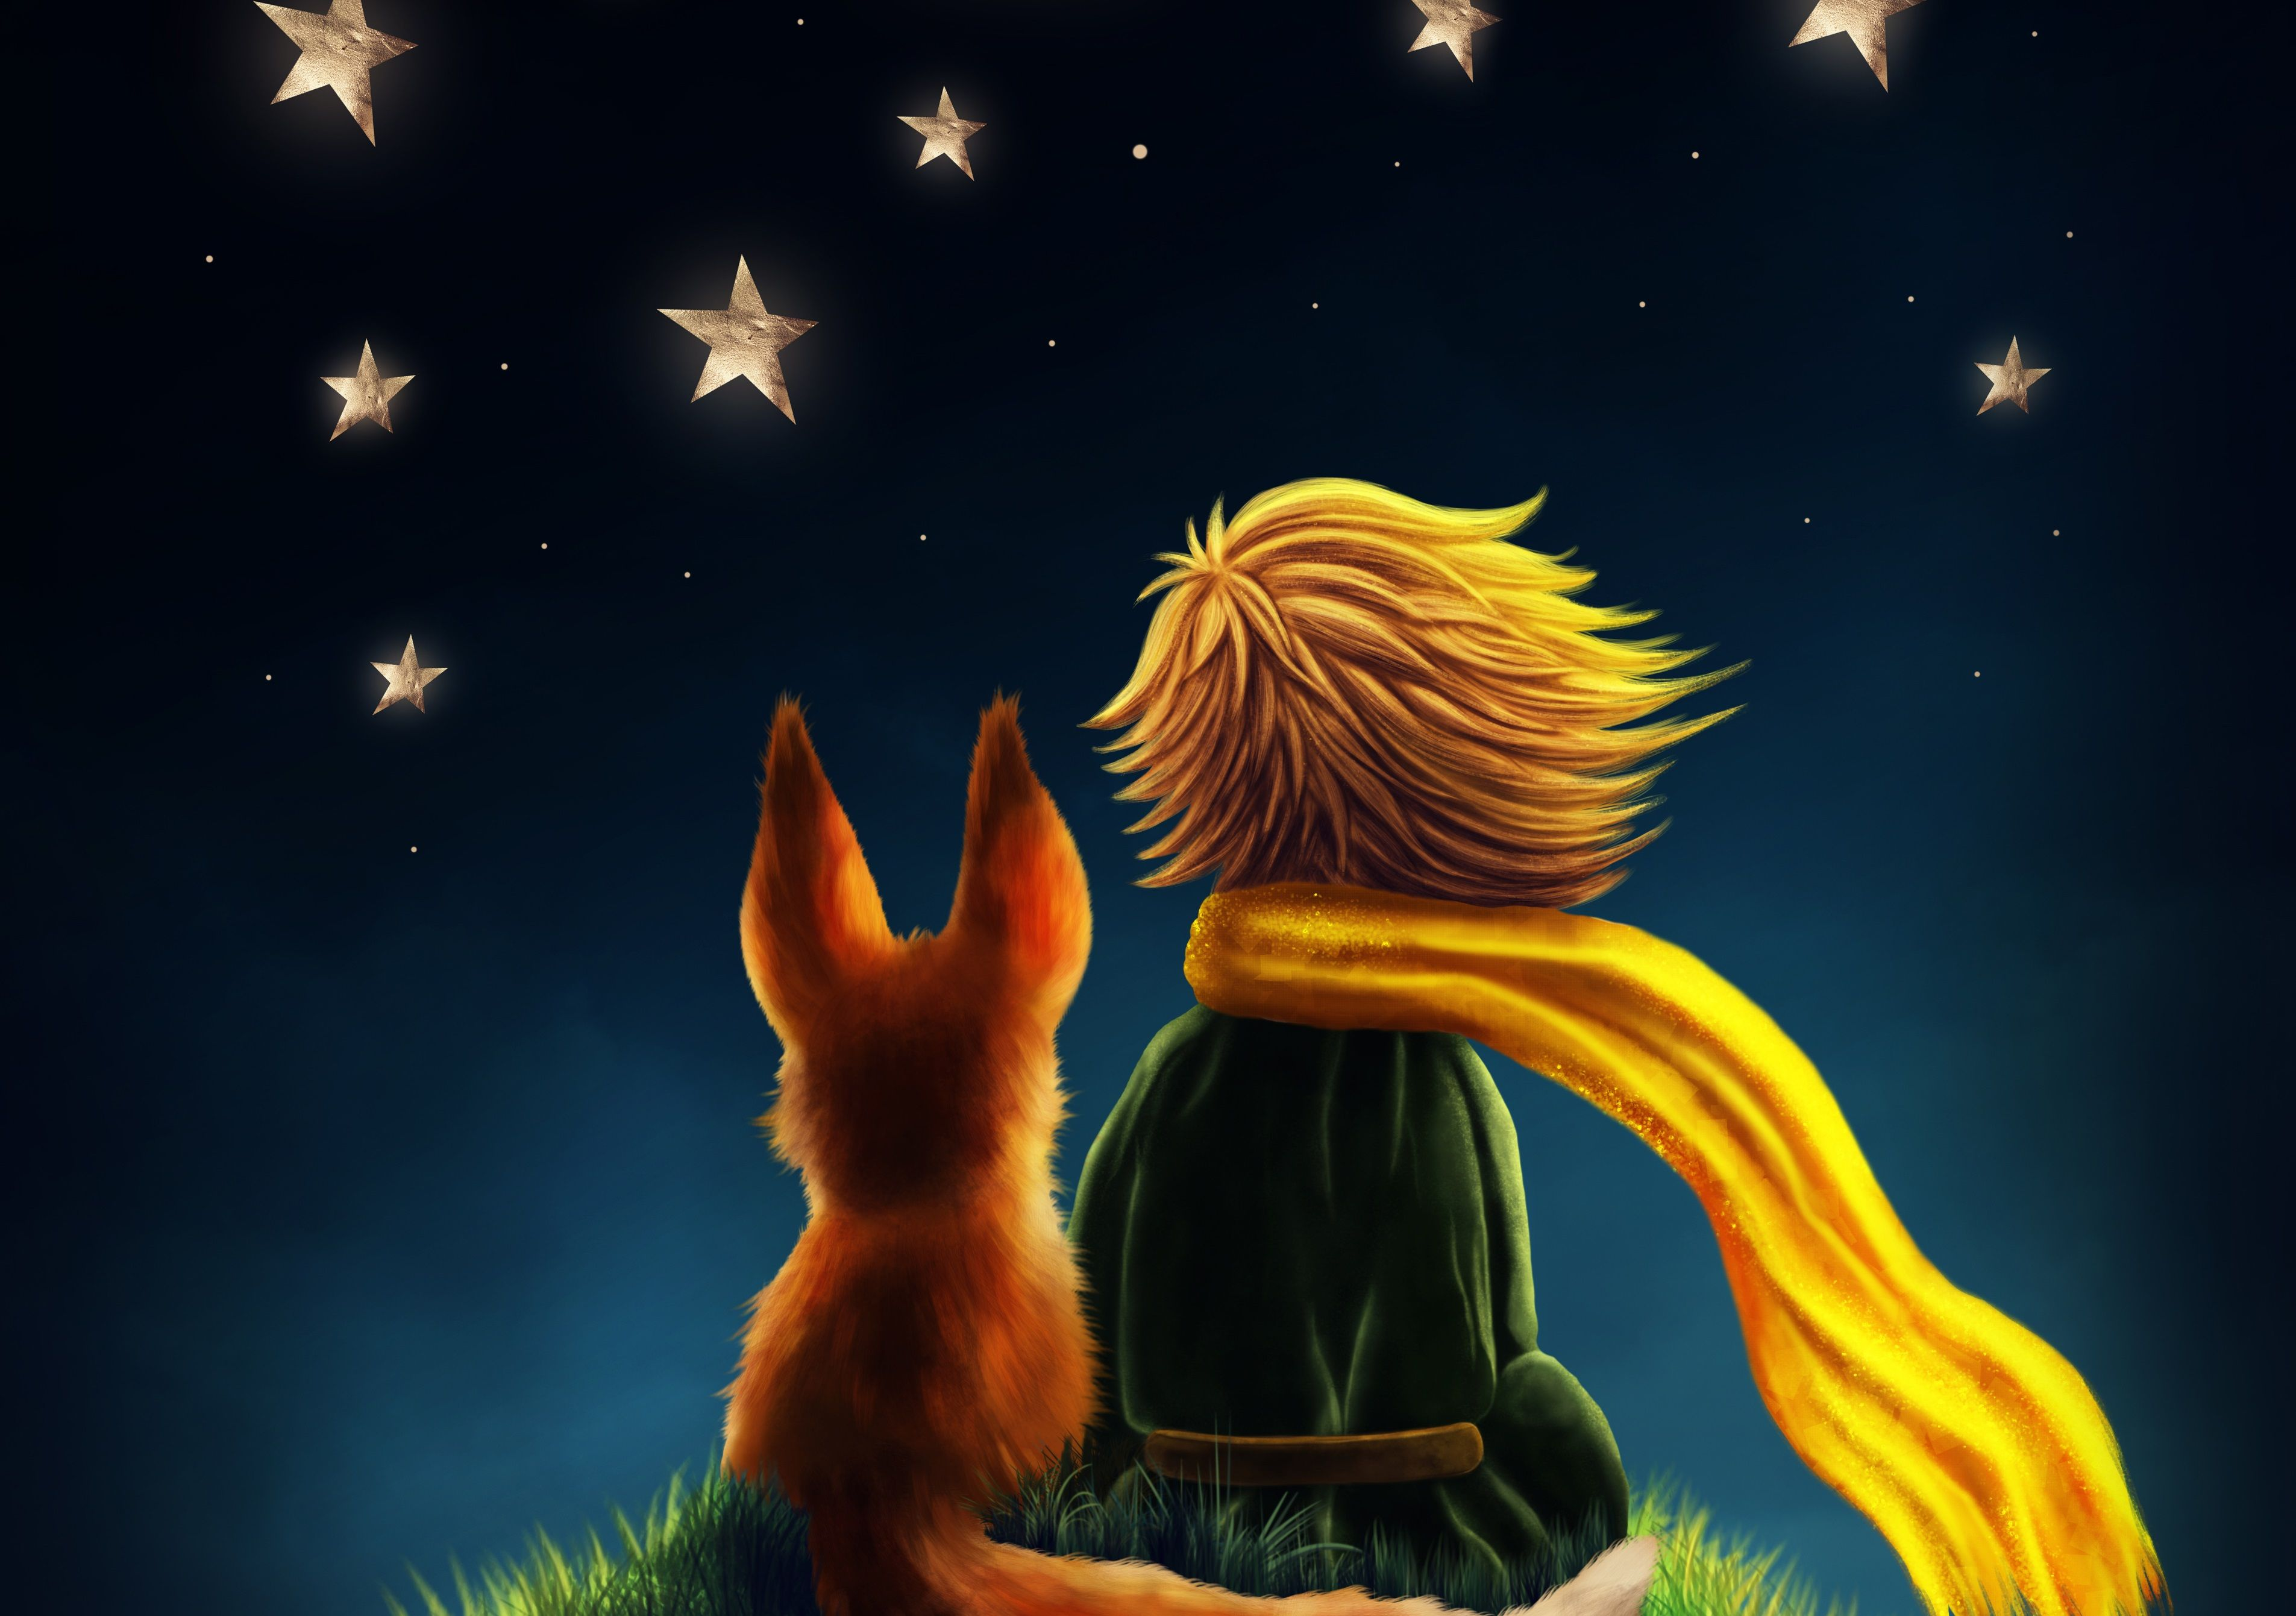 Little Prince Wallpapers Top Free Little Prince Backgrounds